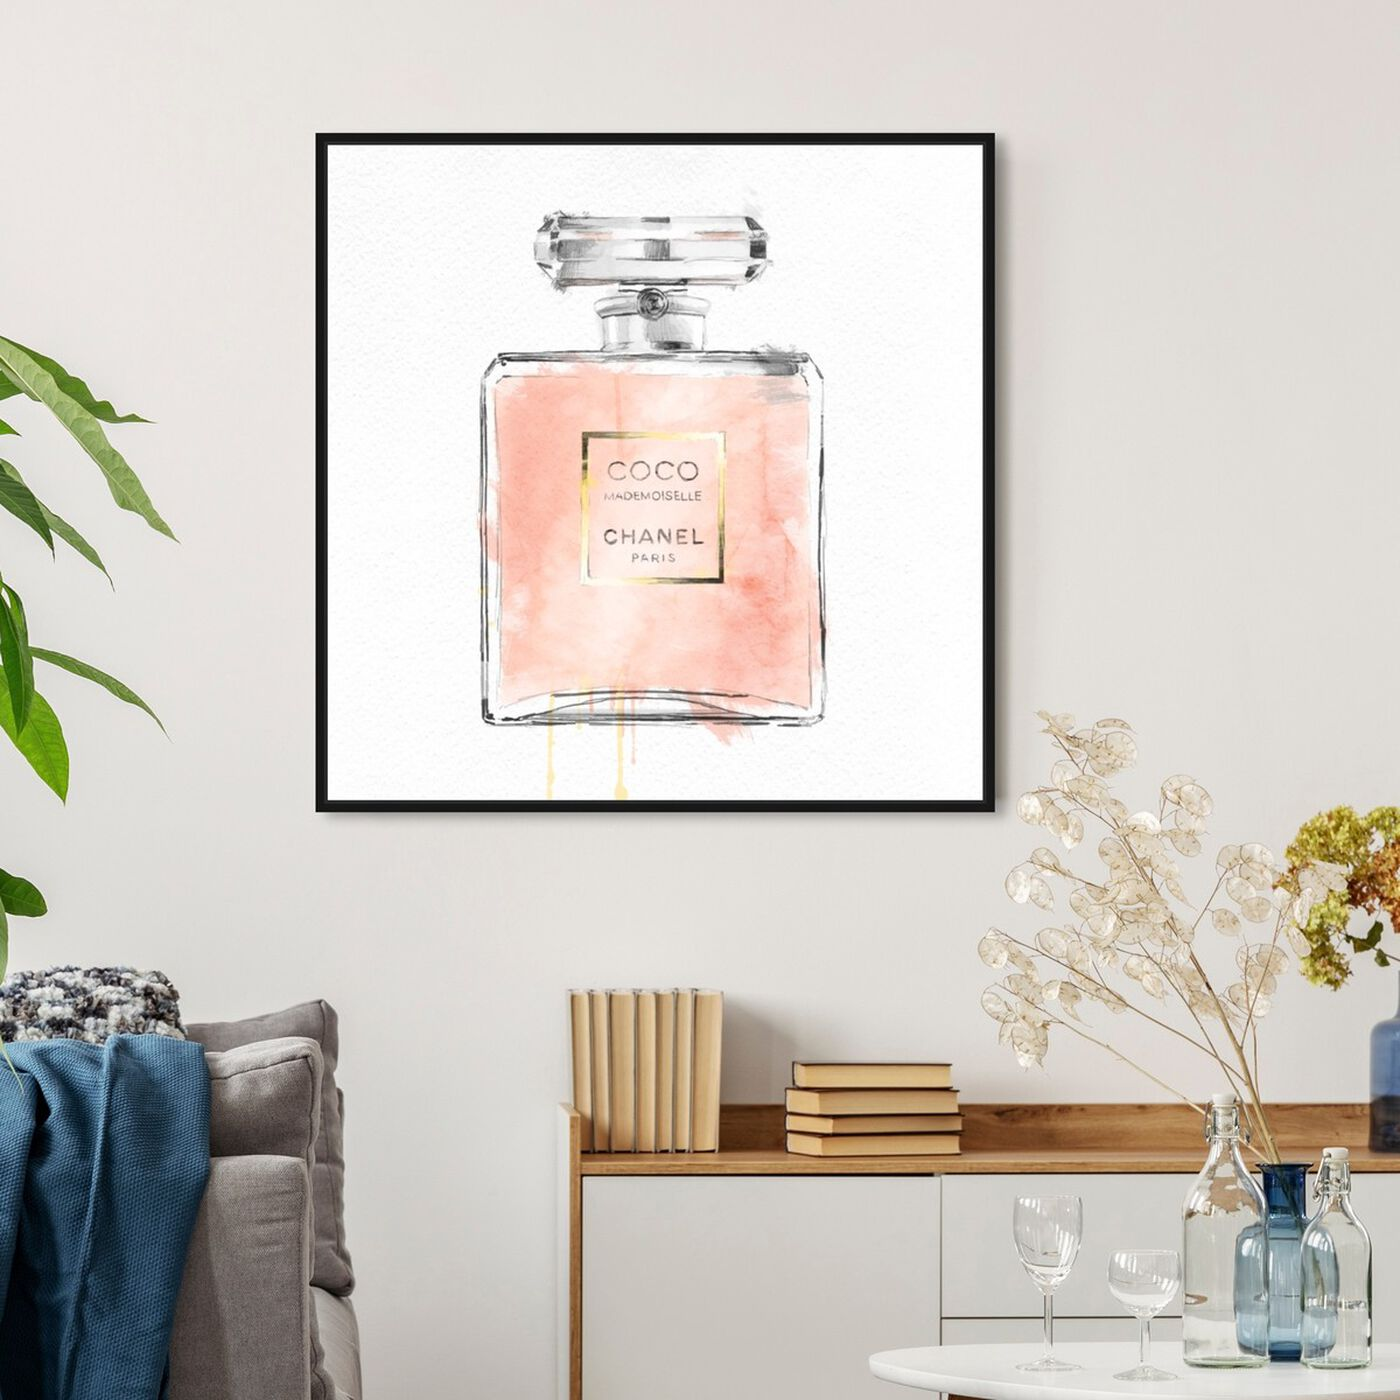 Hanging view of Mademoiselle featuring fashion and glam and perfumes art.